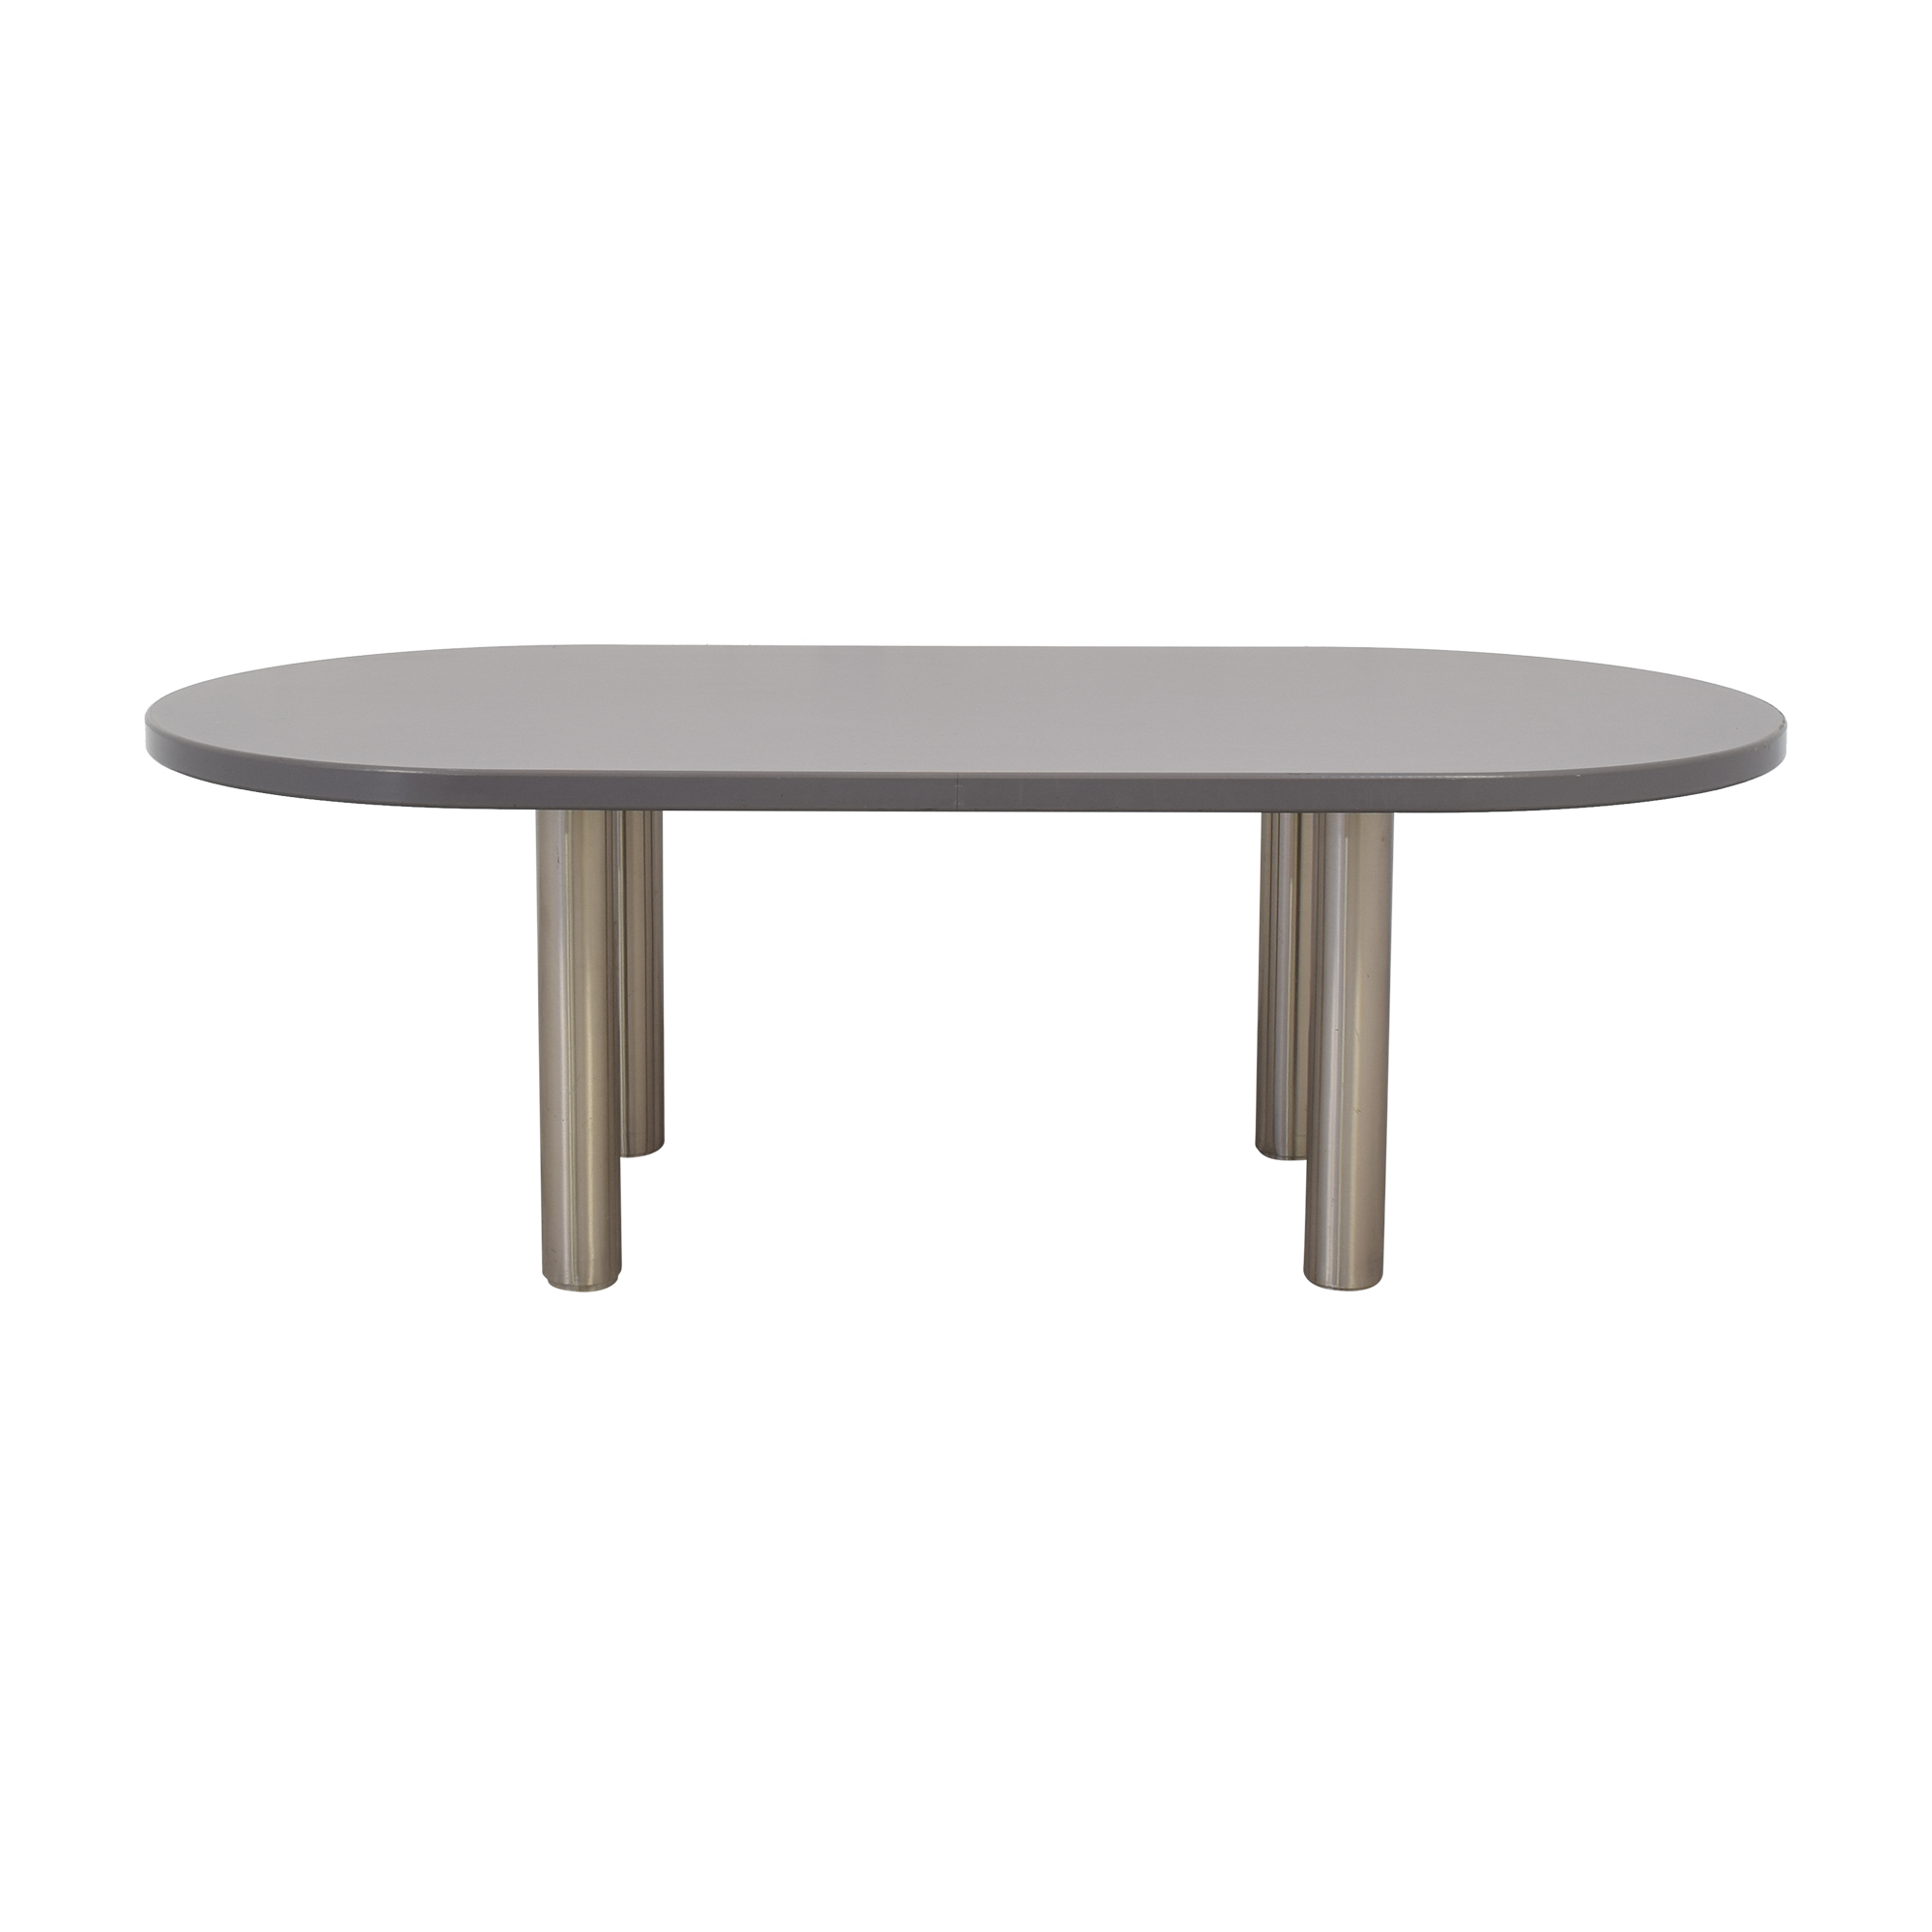 Knoll Knoll Reff Profile Meeting Table price